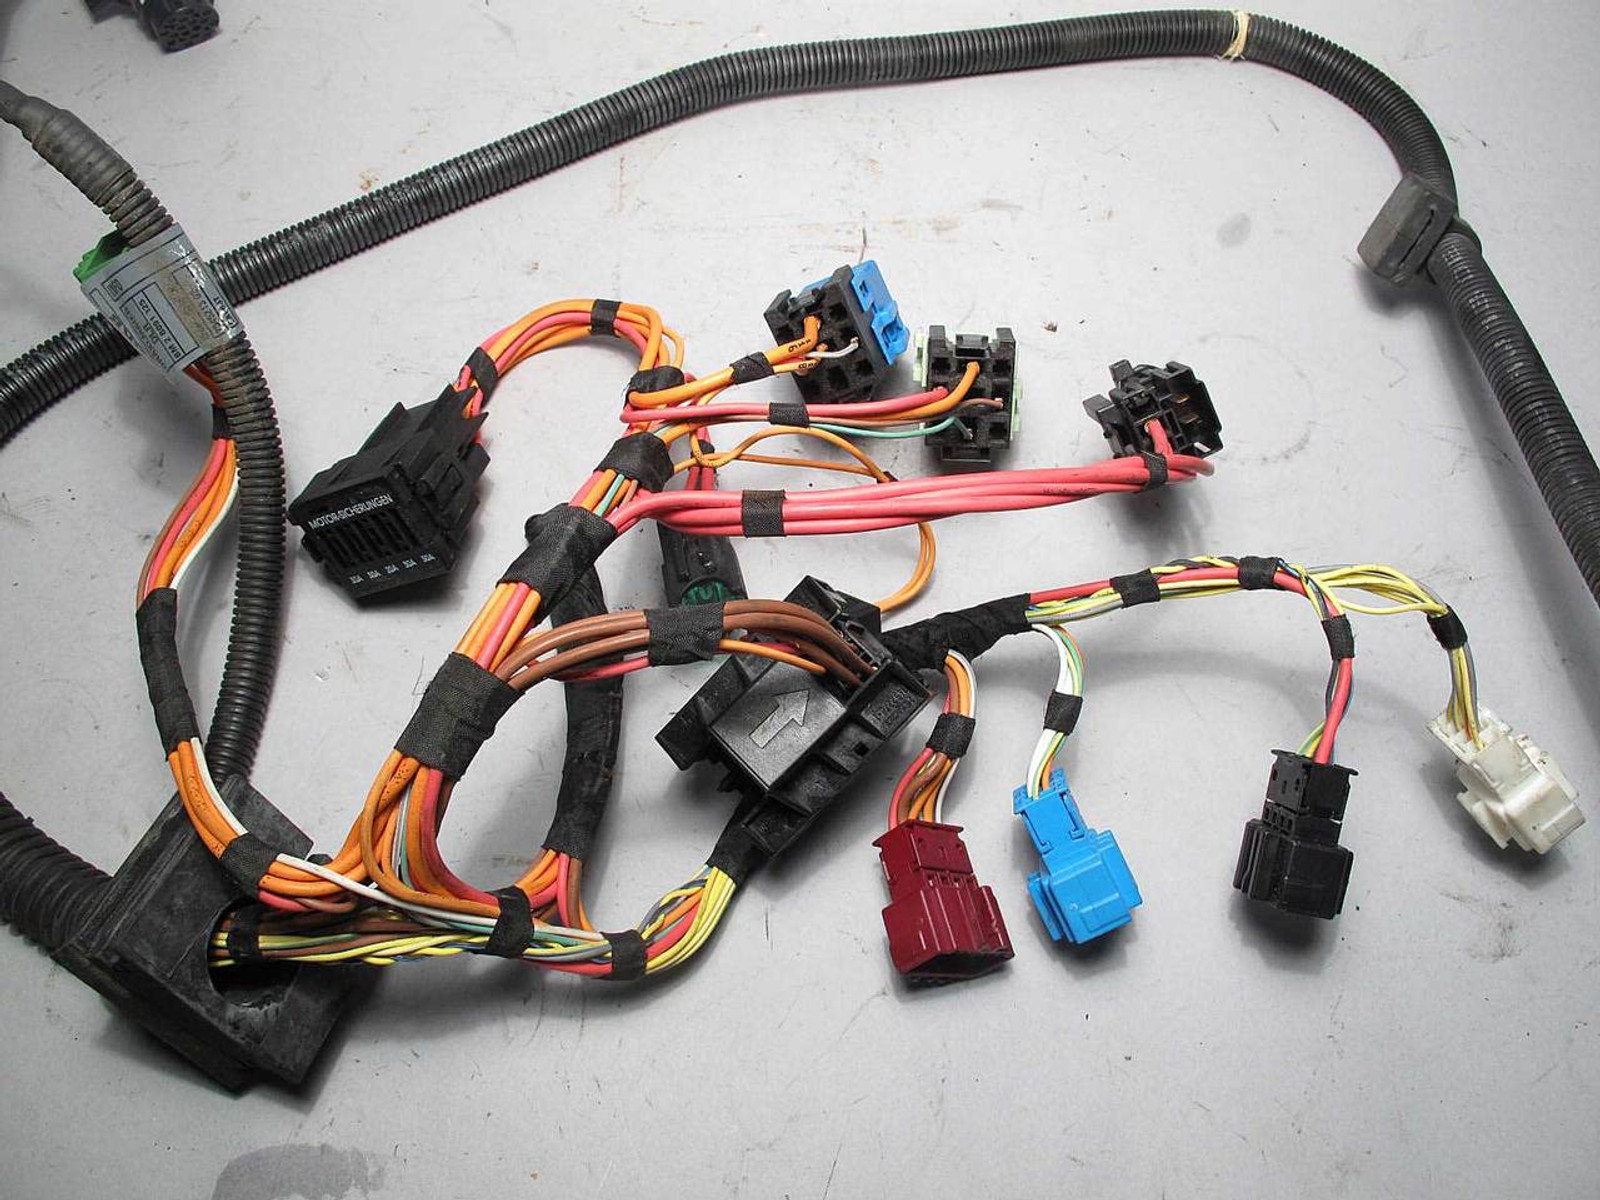 2006 bmw e90 n52 325 330 automatic transmission wiring harness rh prussianmotors com bmw e90 amp wiring harness bmw e90 radio wiring harness